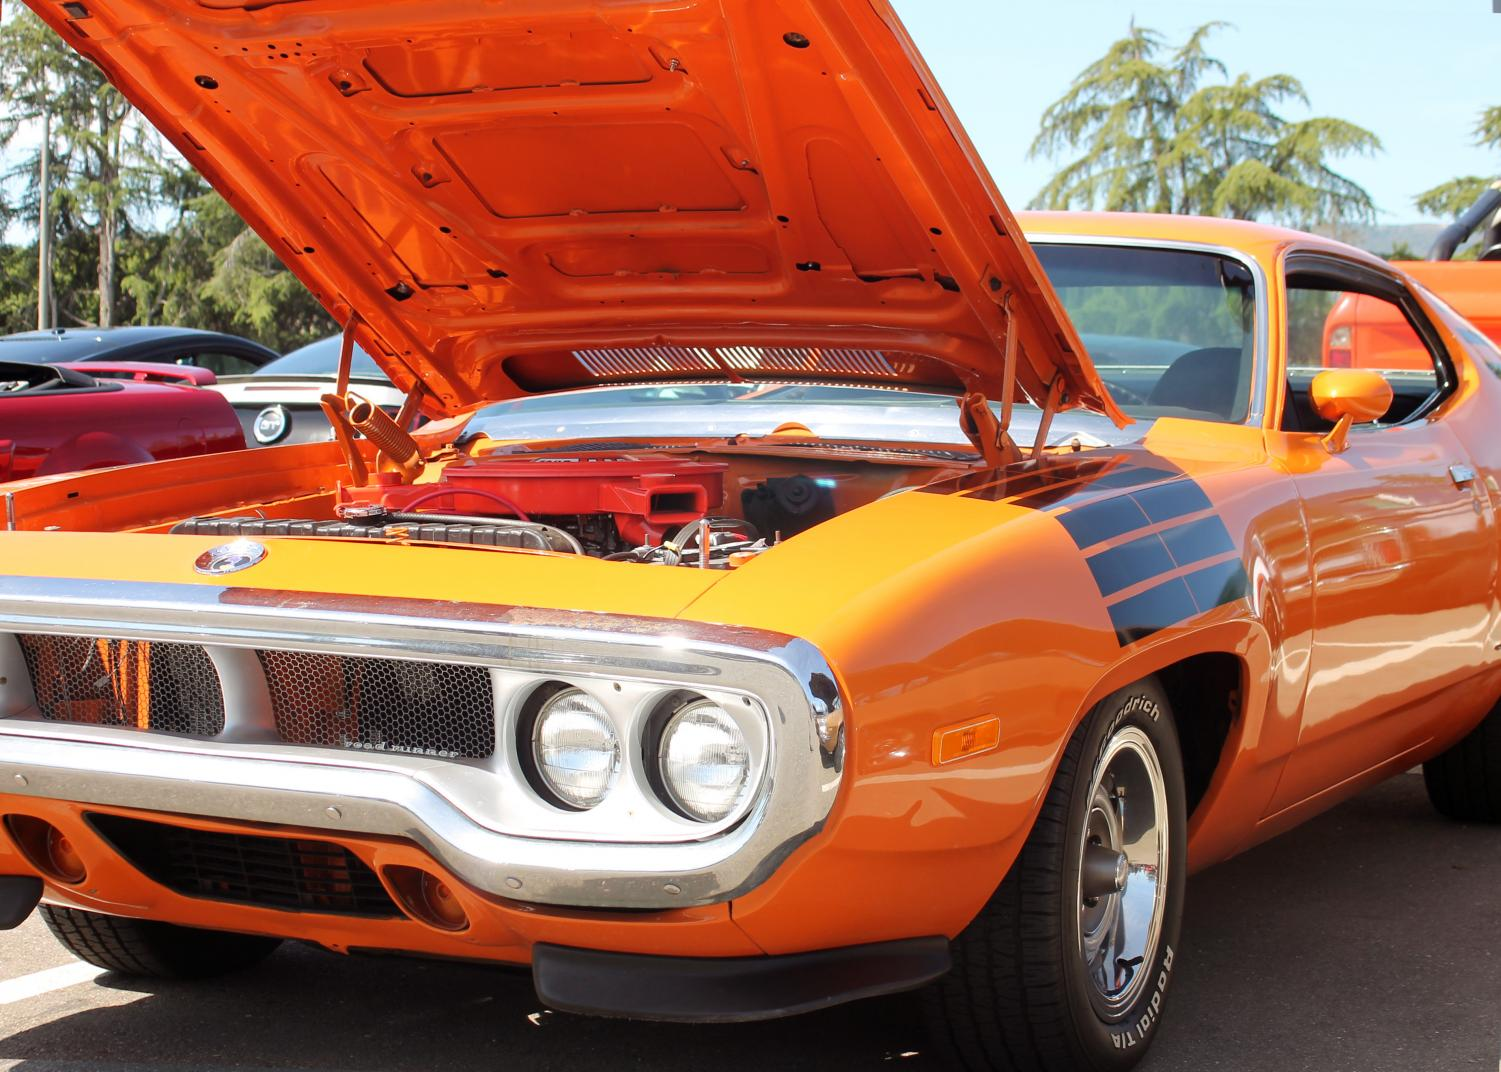 +The+early+70s+Plymouth+Road+Runner+highlights+6th+Annual+De+Anza+College+Auto+Tech+Car+Show+on+April+13th.